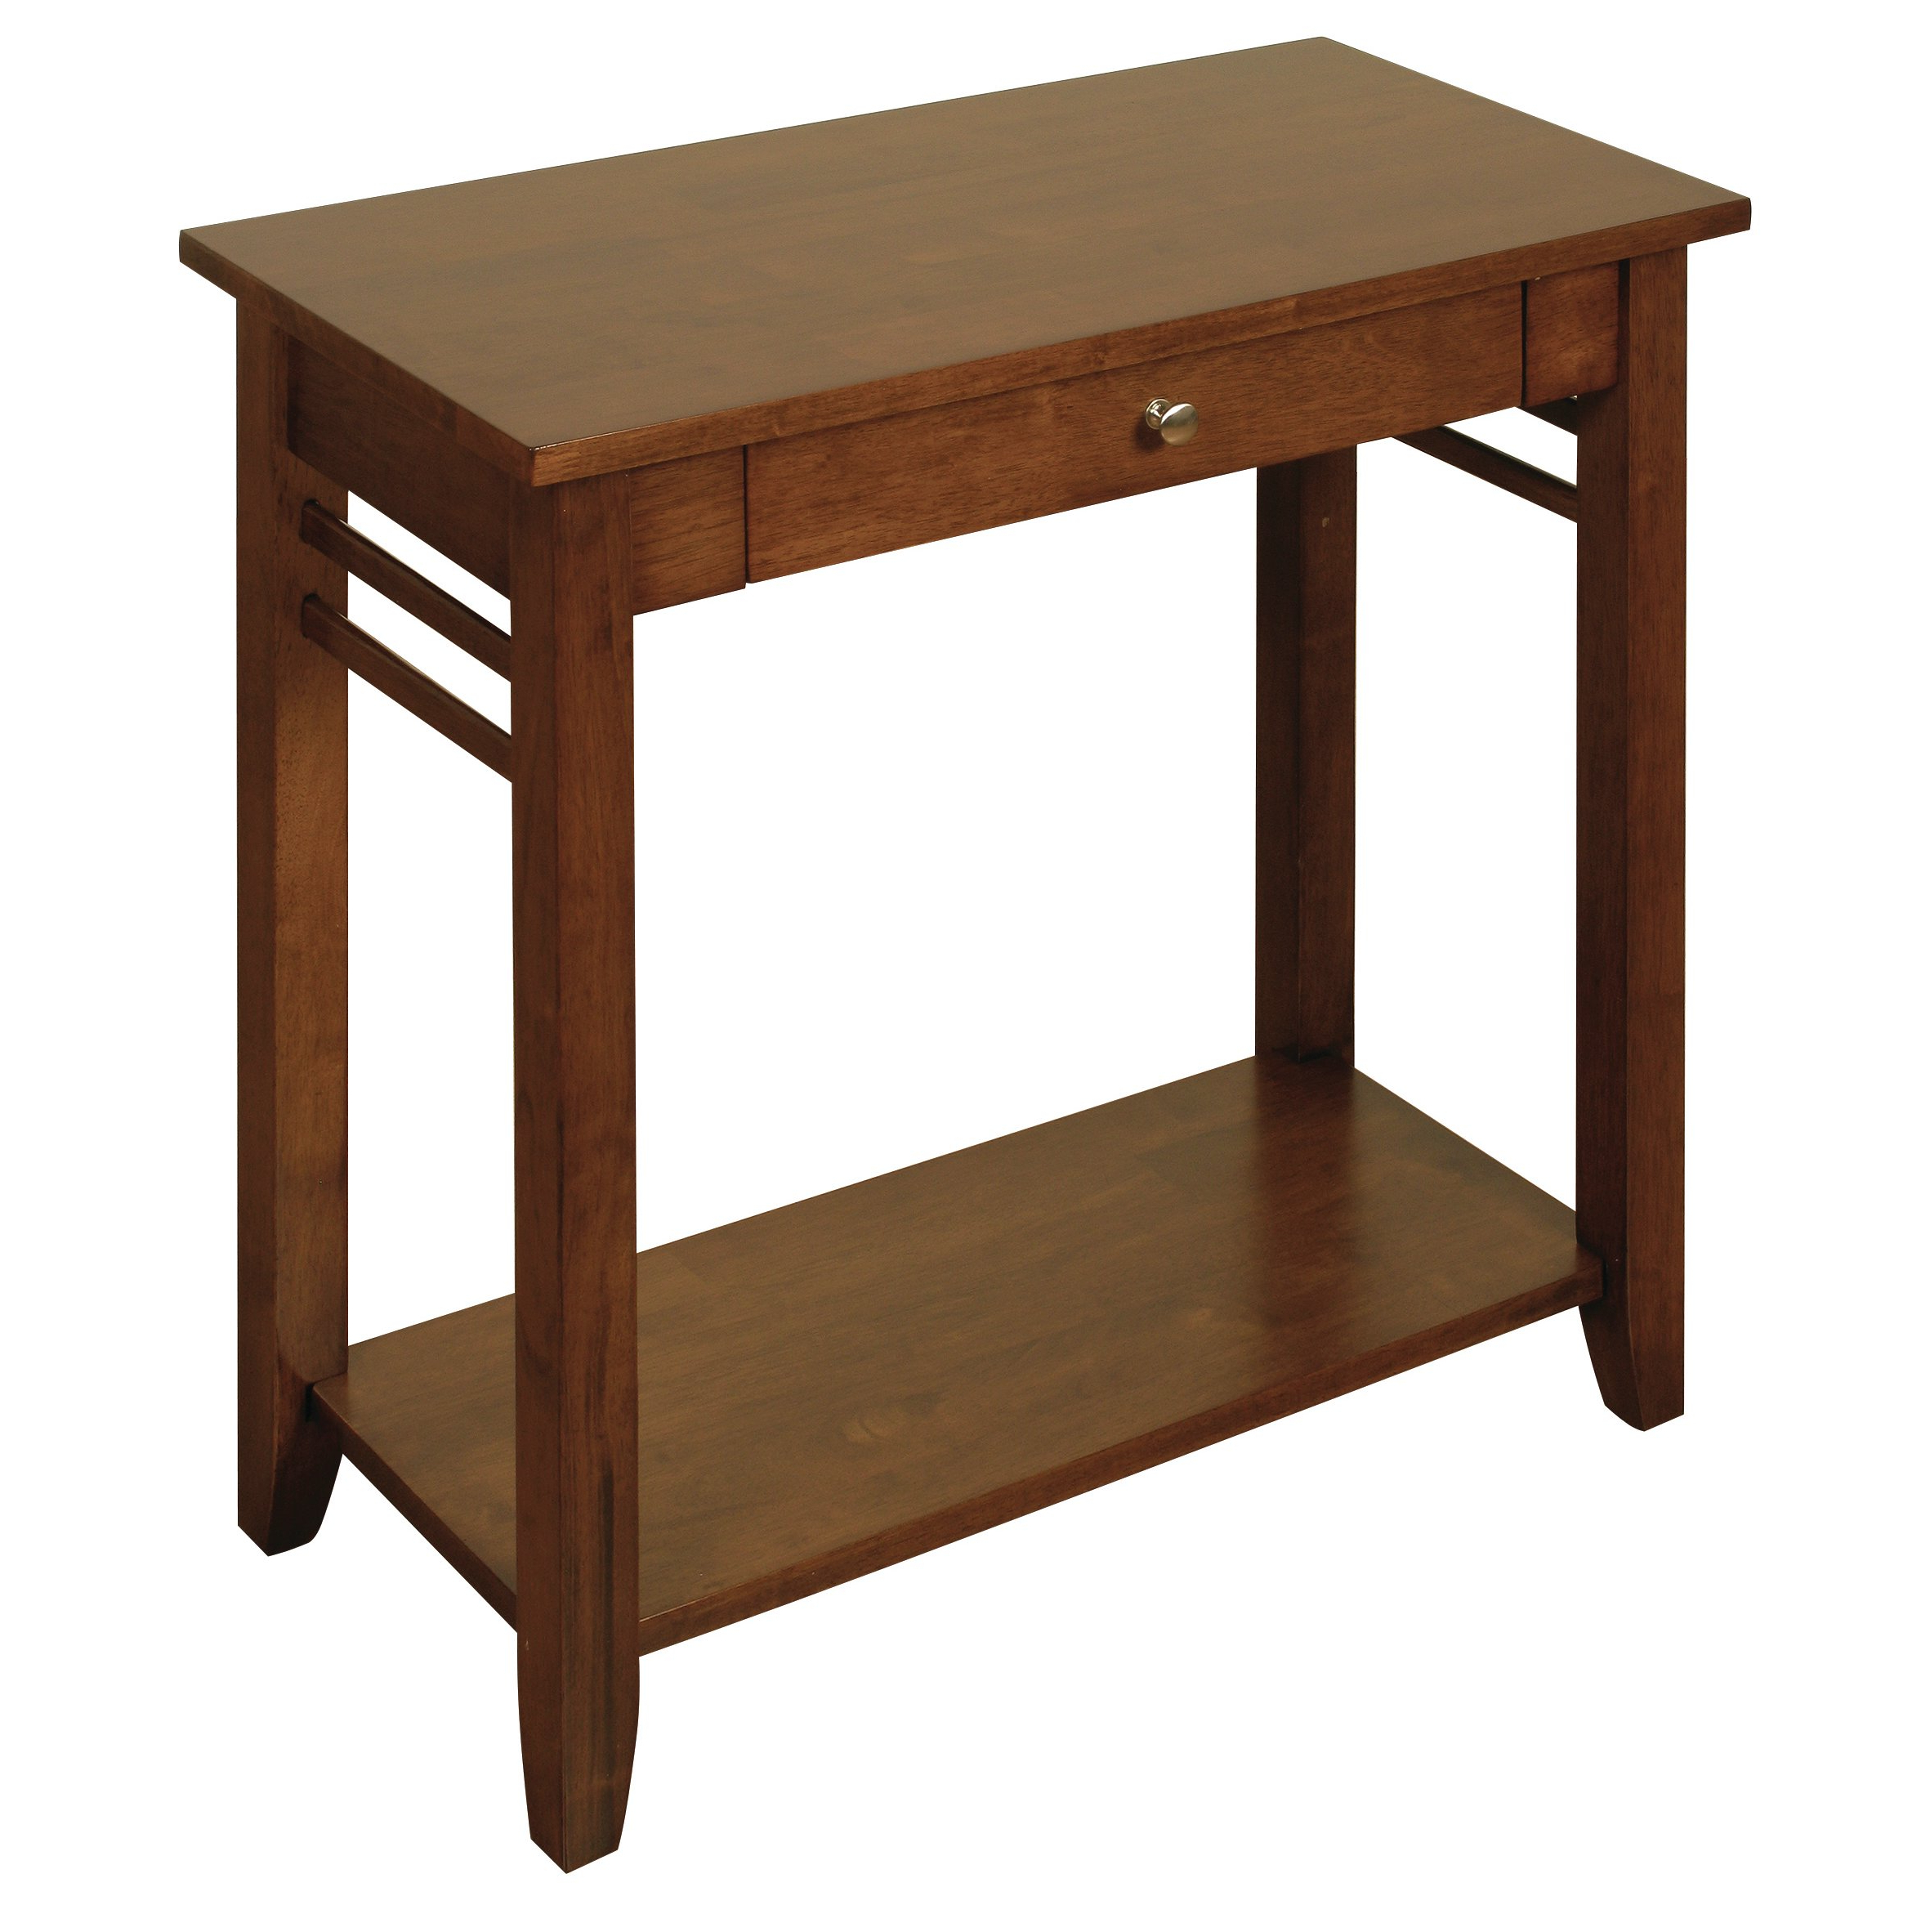 Most Recent Echelon Console Tables For Console Tables & Hallway Tables You'll Love (Gallery 13 of 20)